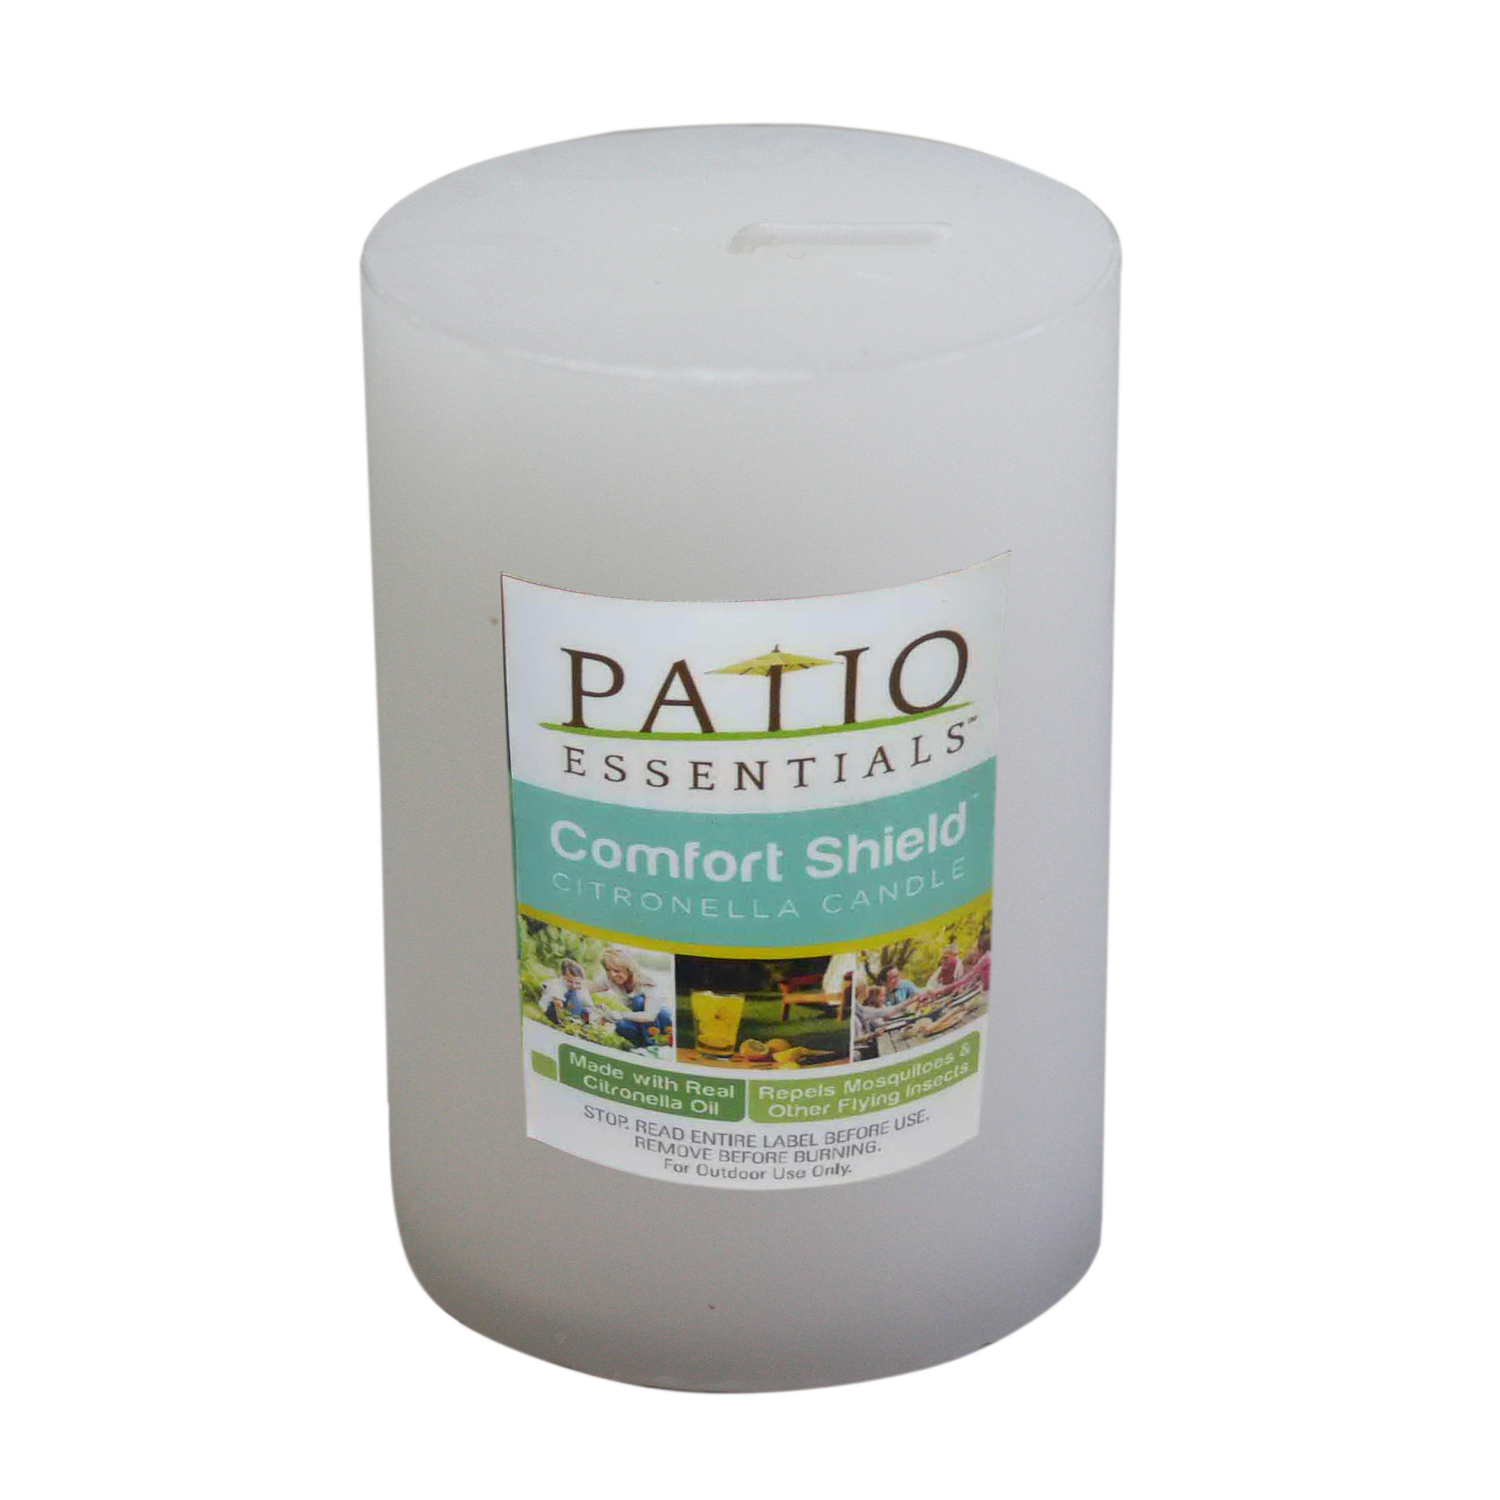 Patio Essentials  Candle  Wax  For Mosquitoes/Other Flying Insects 8 oz.